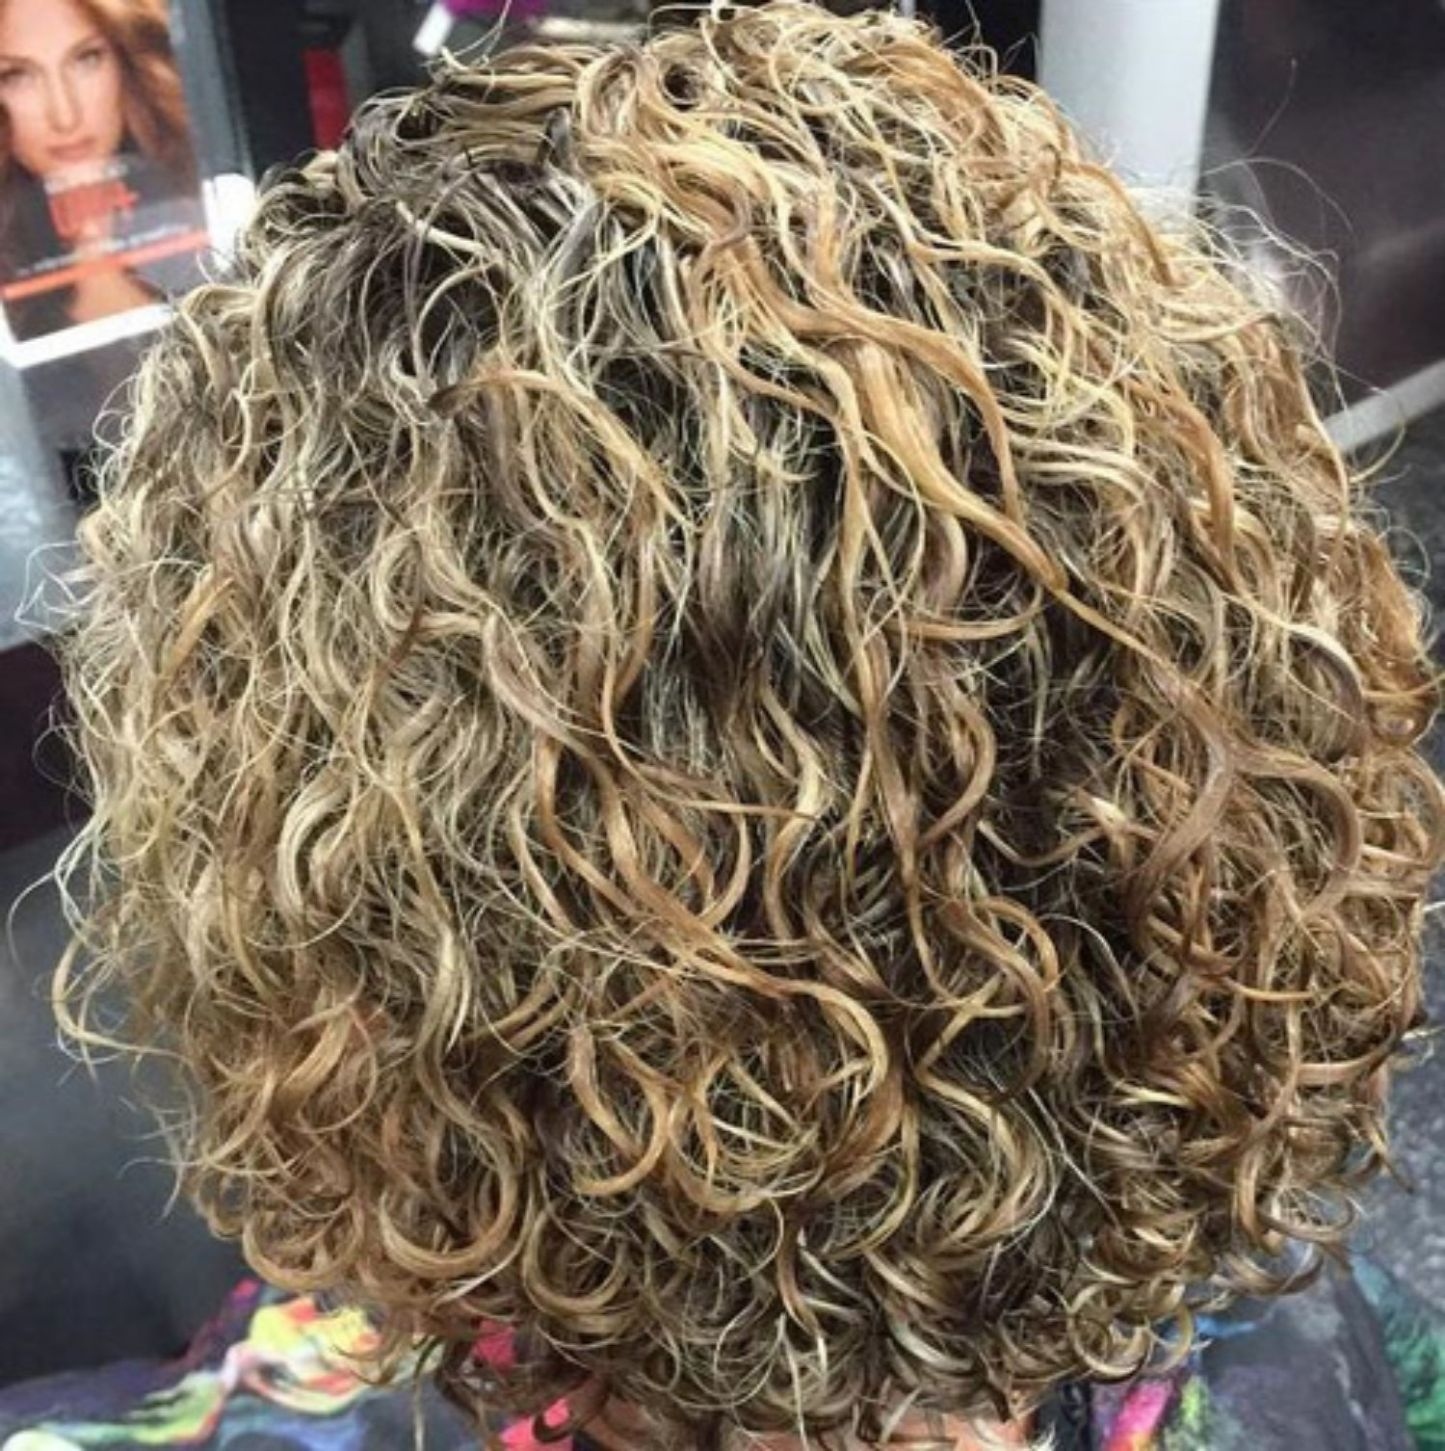 Feathers Haircut Before And After Transformation Permed Hairstyles Long Hair Perm Hair Styles